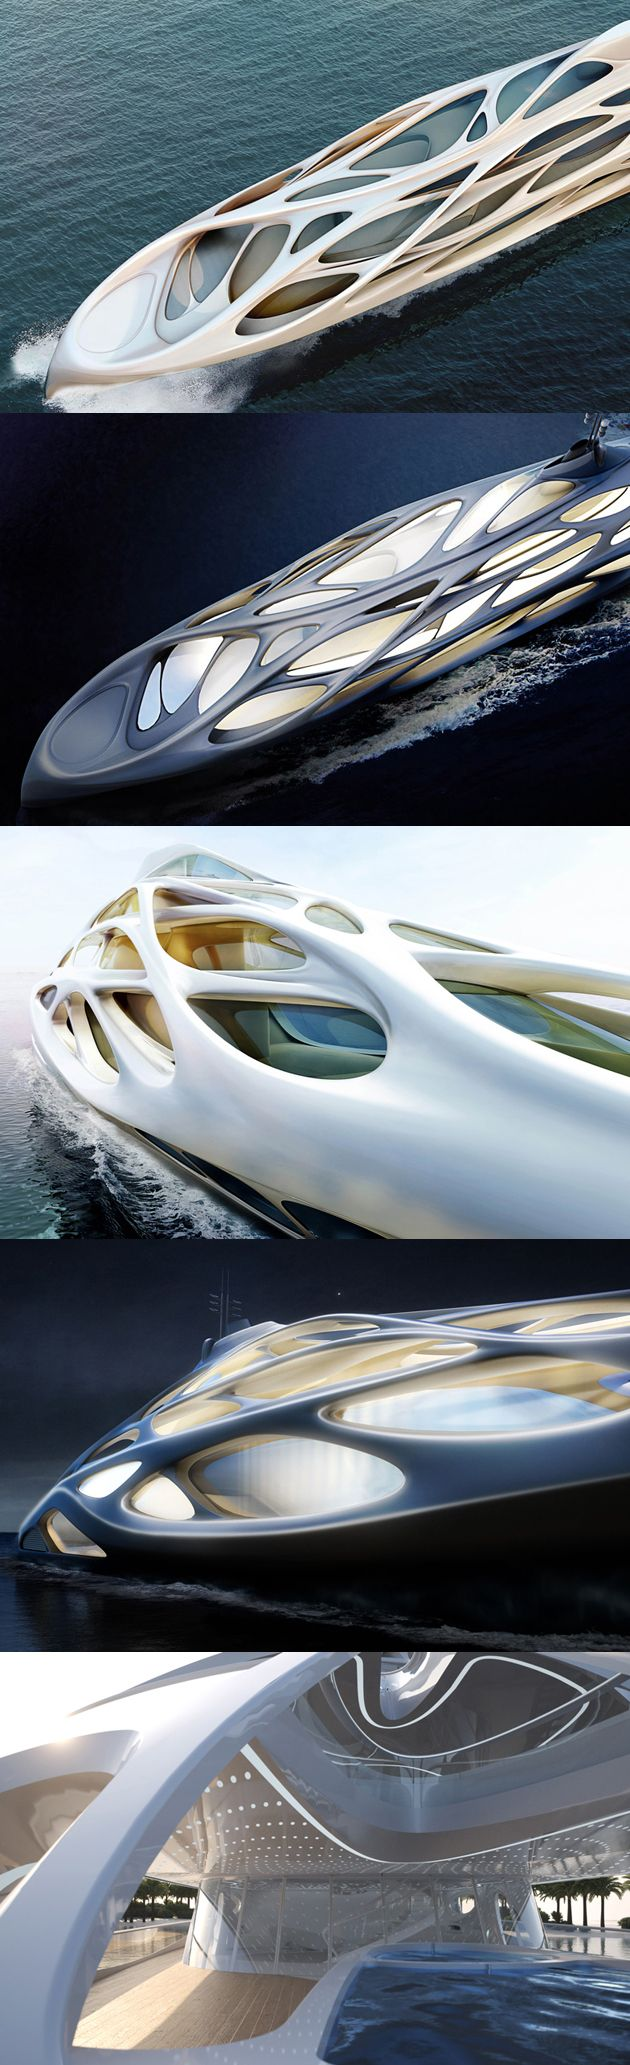 A perfect example of good architecture not in a building:: Zaha Hadid Designs a Superyacht for shipbuilding company Blohm+Voss, reaching 128 meters in length, and a supporting structure resembling the organic ecosystem below. The form appears dynamic, resembling the flow of water. Paired with the clear, clean, and white coated aesthetics, this yacht fits right in with the water in which it glides across. More